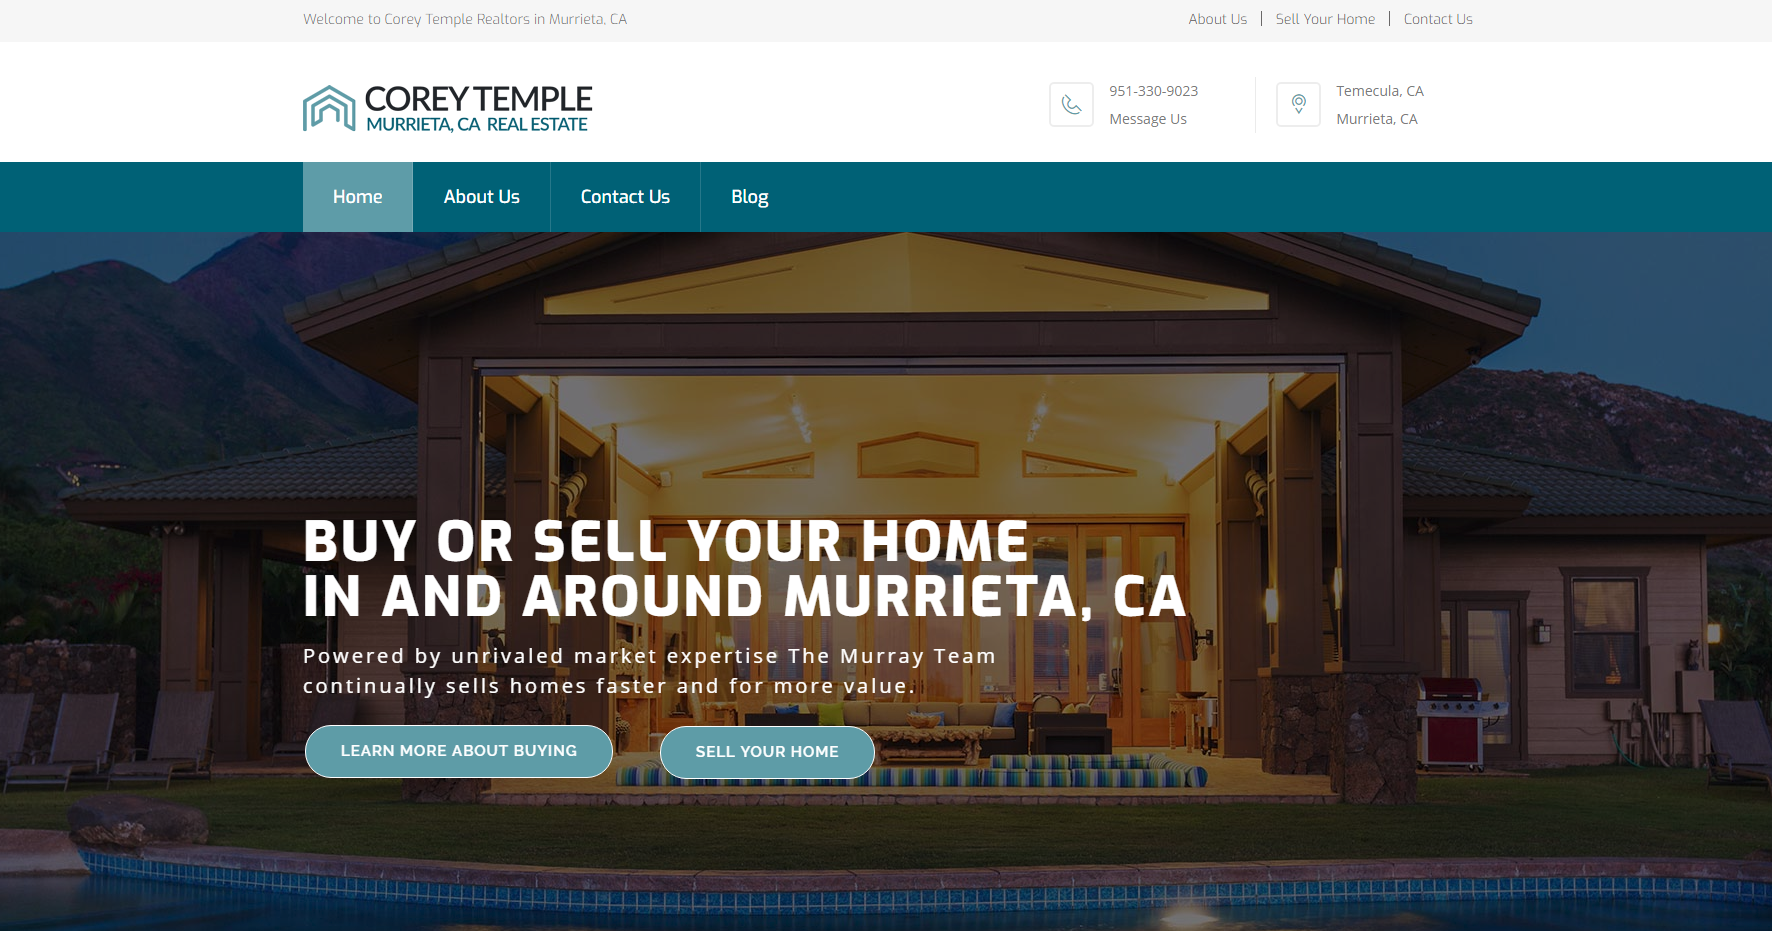 Developed a professional online presence for Corey Temple Realtors. Beautiful styling, professional and clean design and imagery that lends itself to a luxury real estate company.… Read more